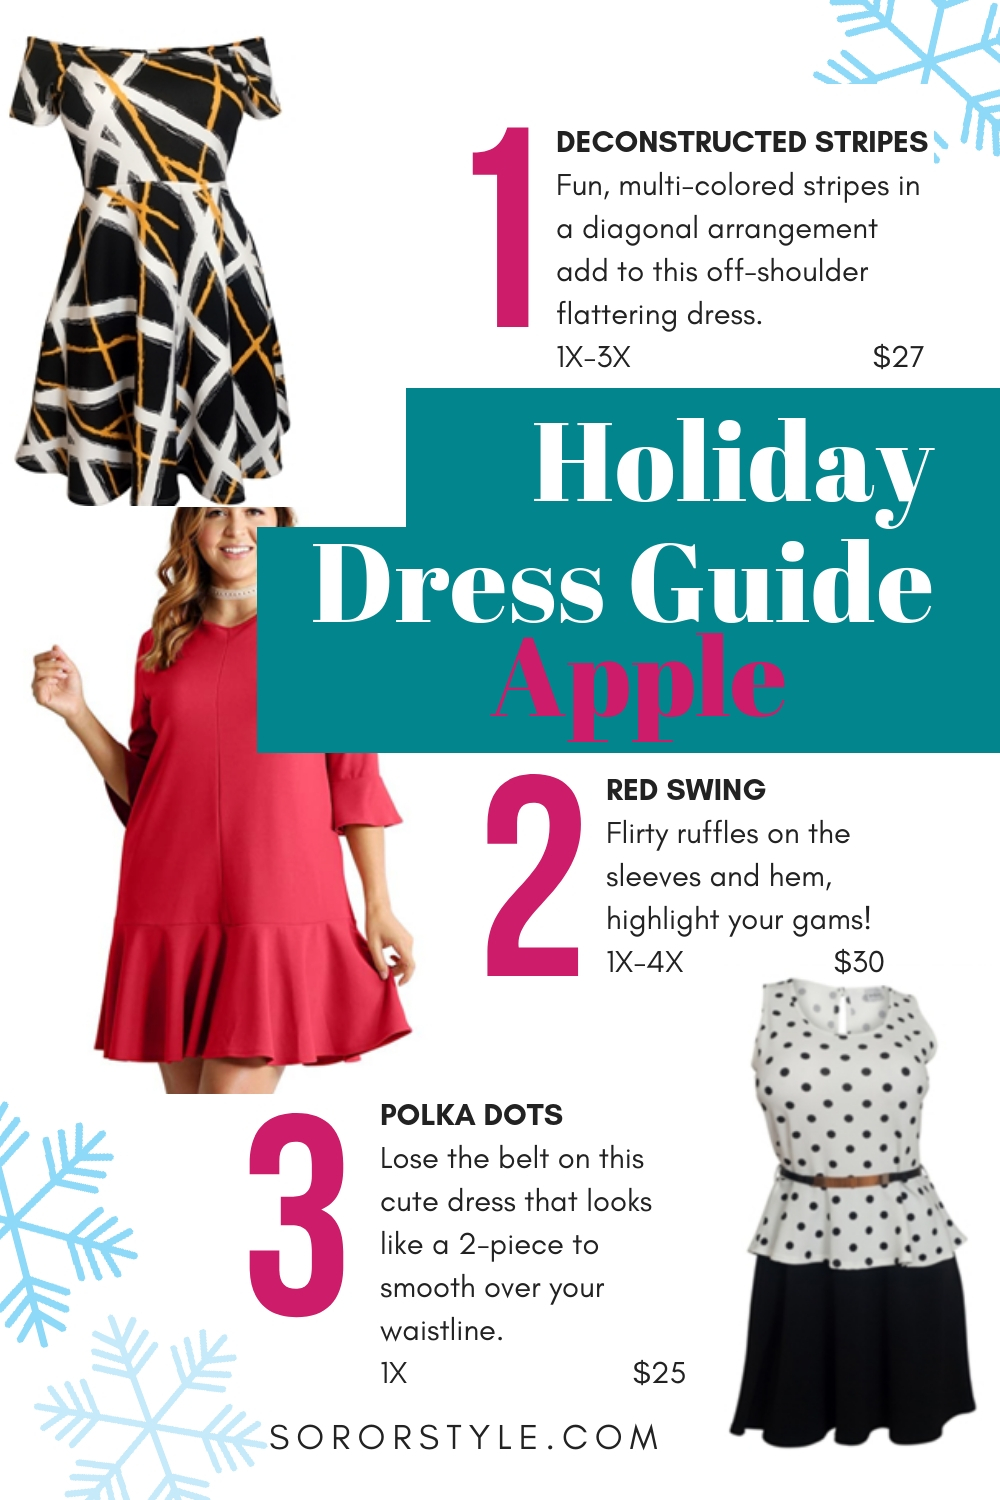 Holiday dress guide 2018 apple.jpg